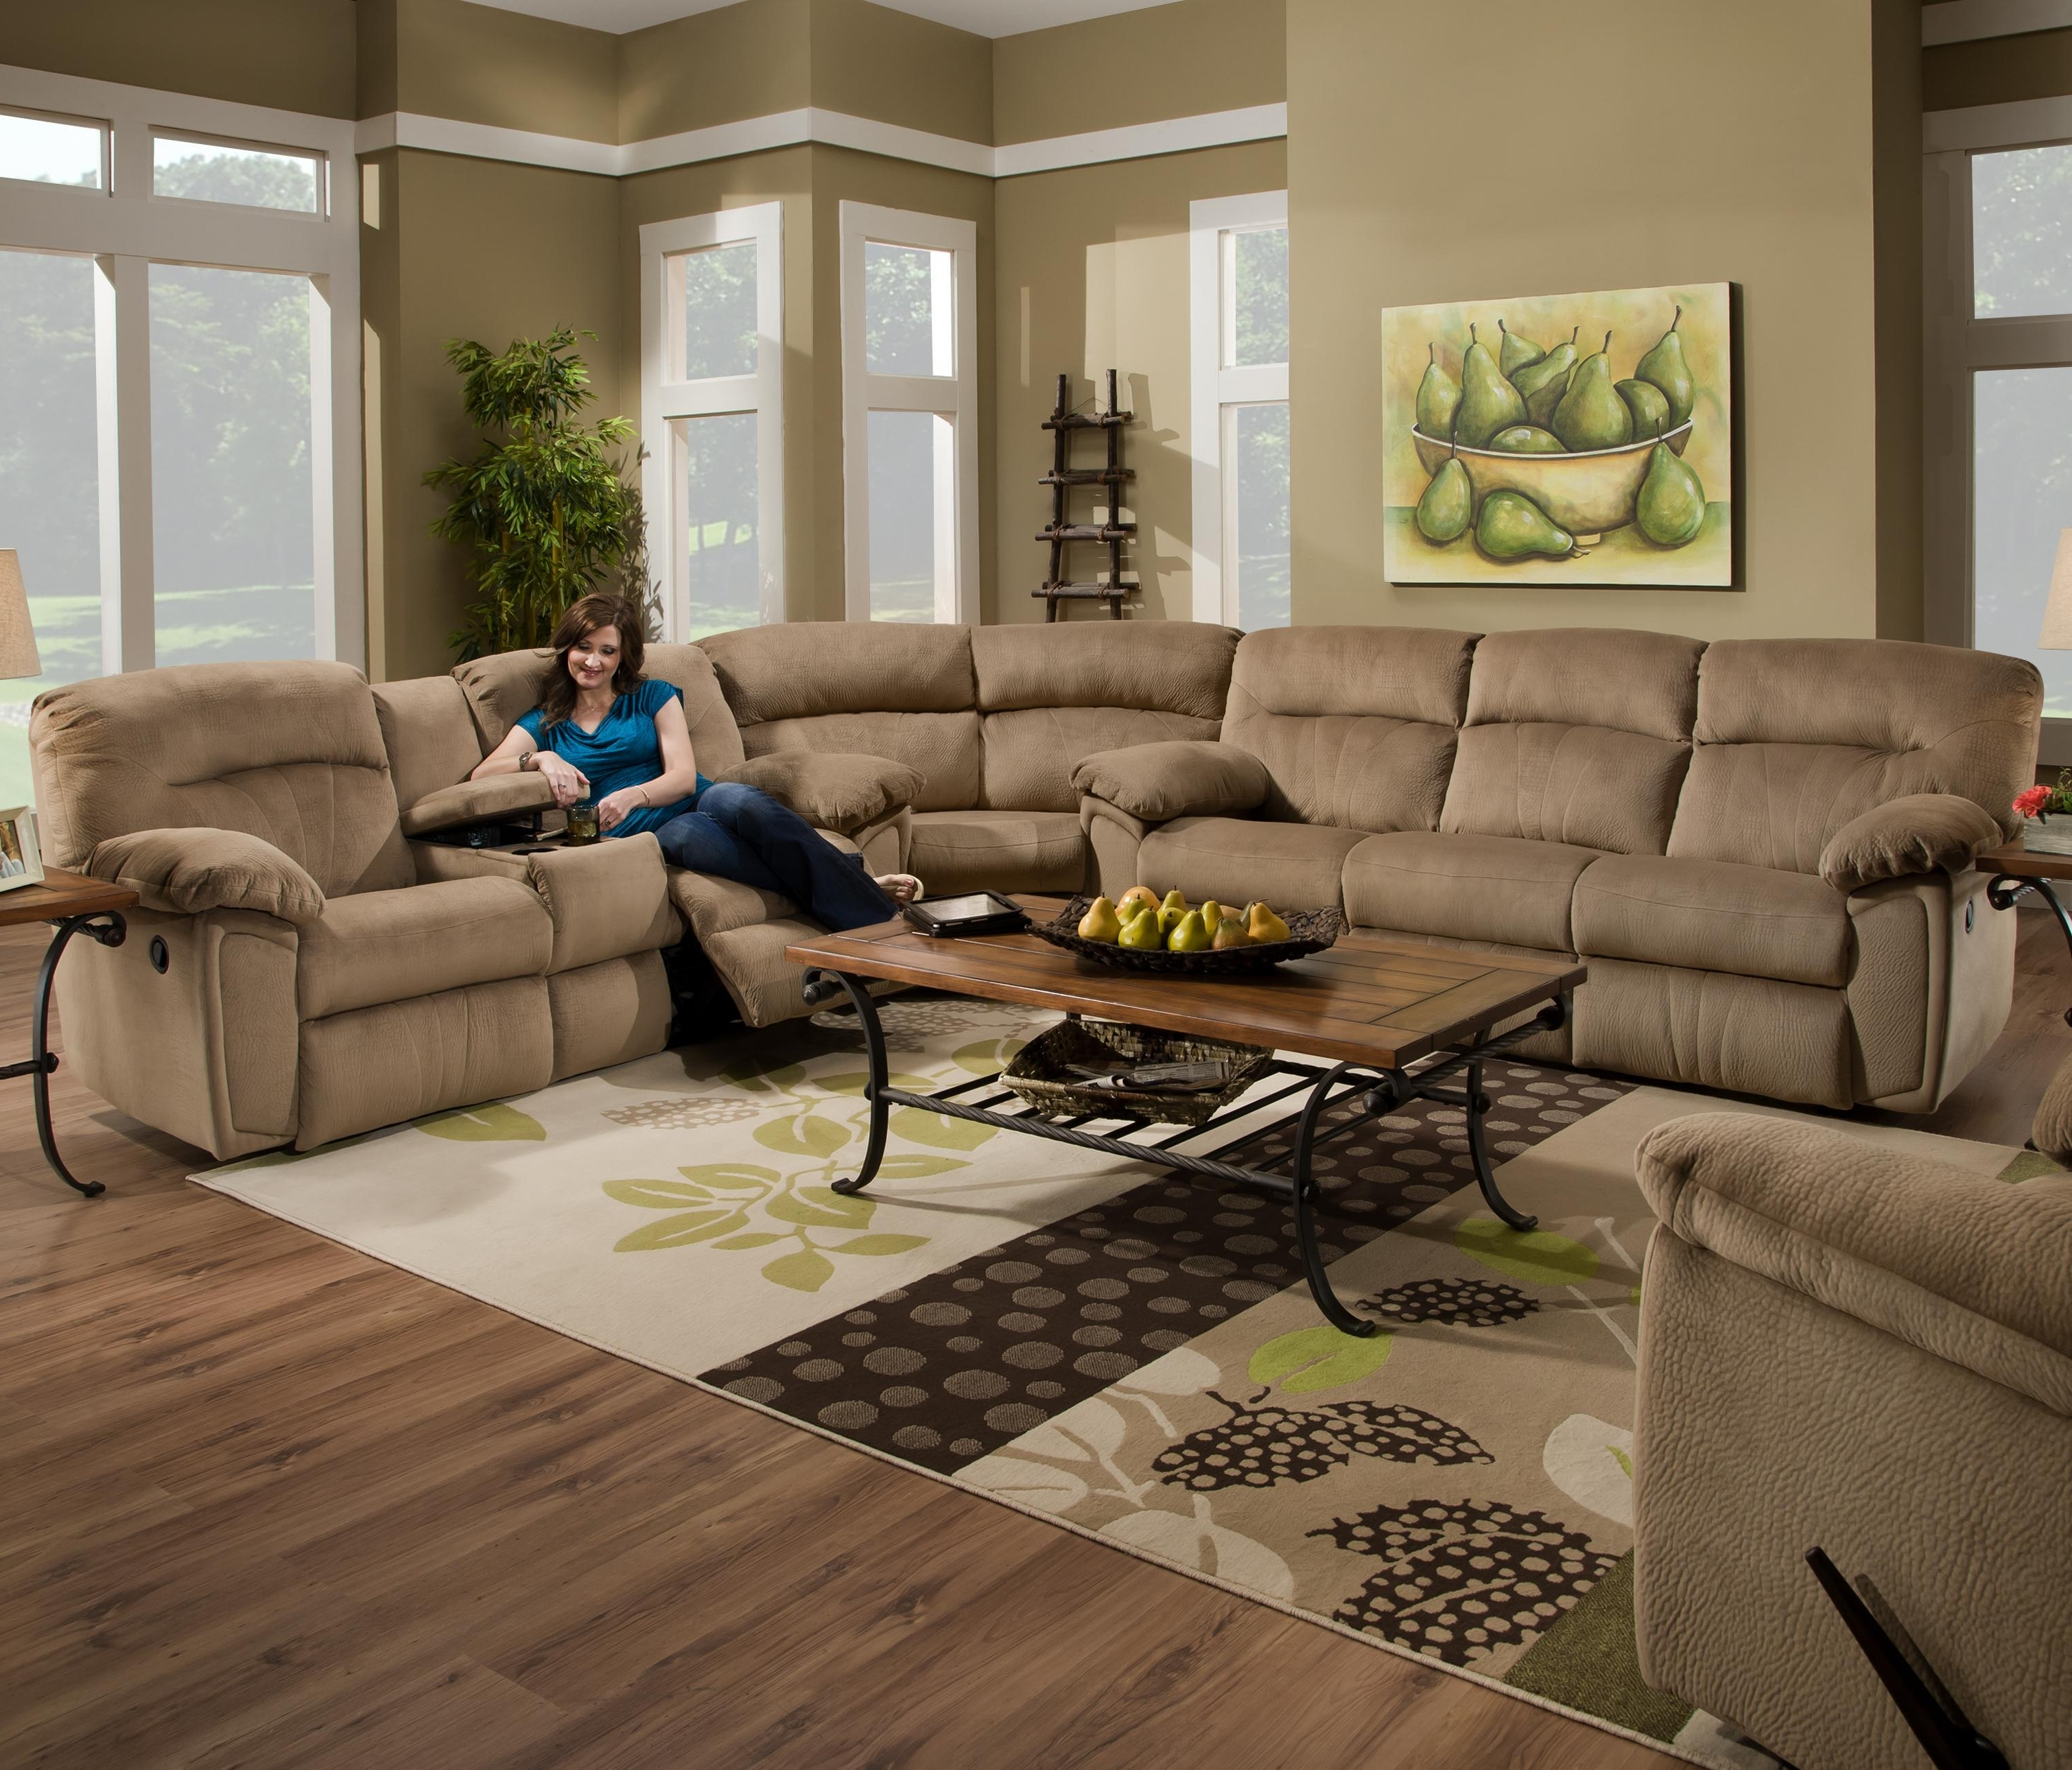 Couch With Cup Holders In Arms Reclining Sectional Sofas For Small Pertaining To Most Popular Reclining Sectional Sofas (View 15 of 15)